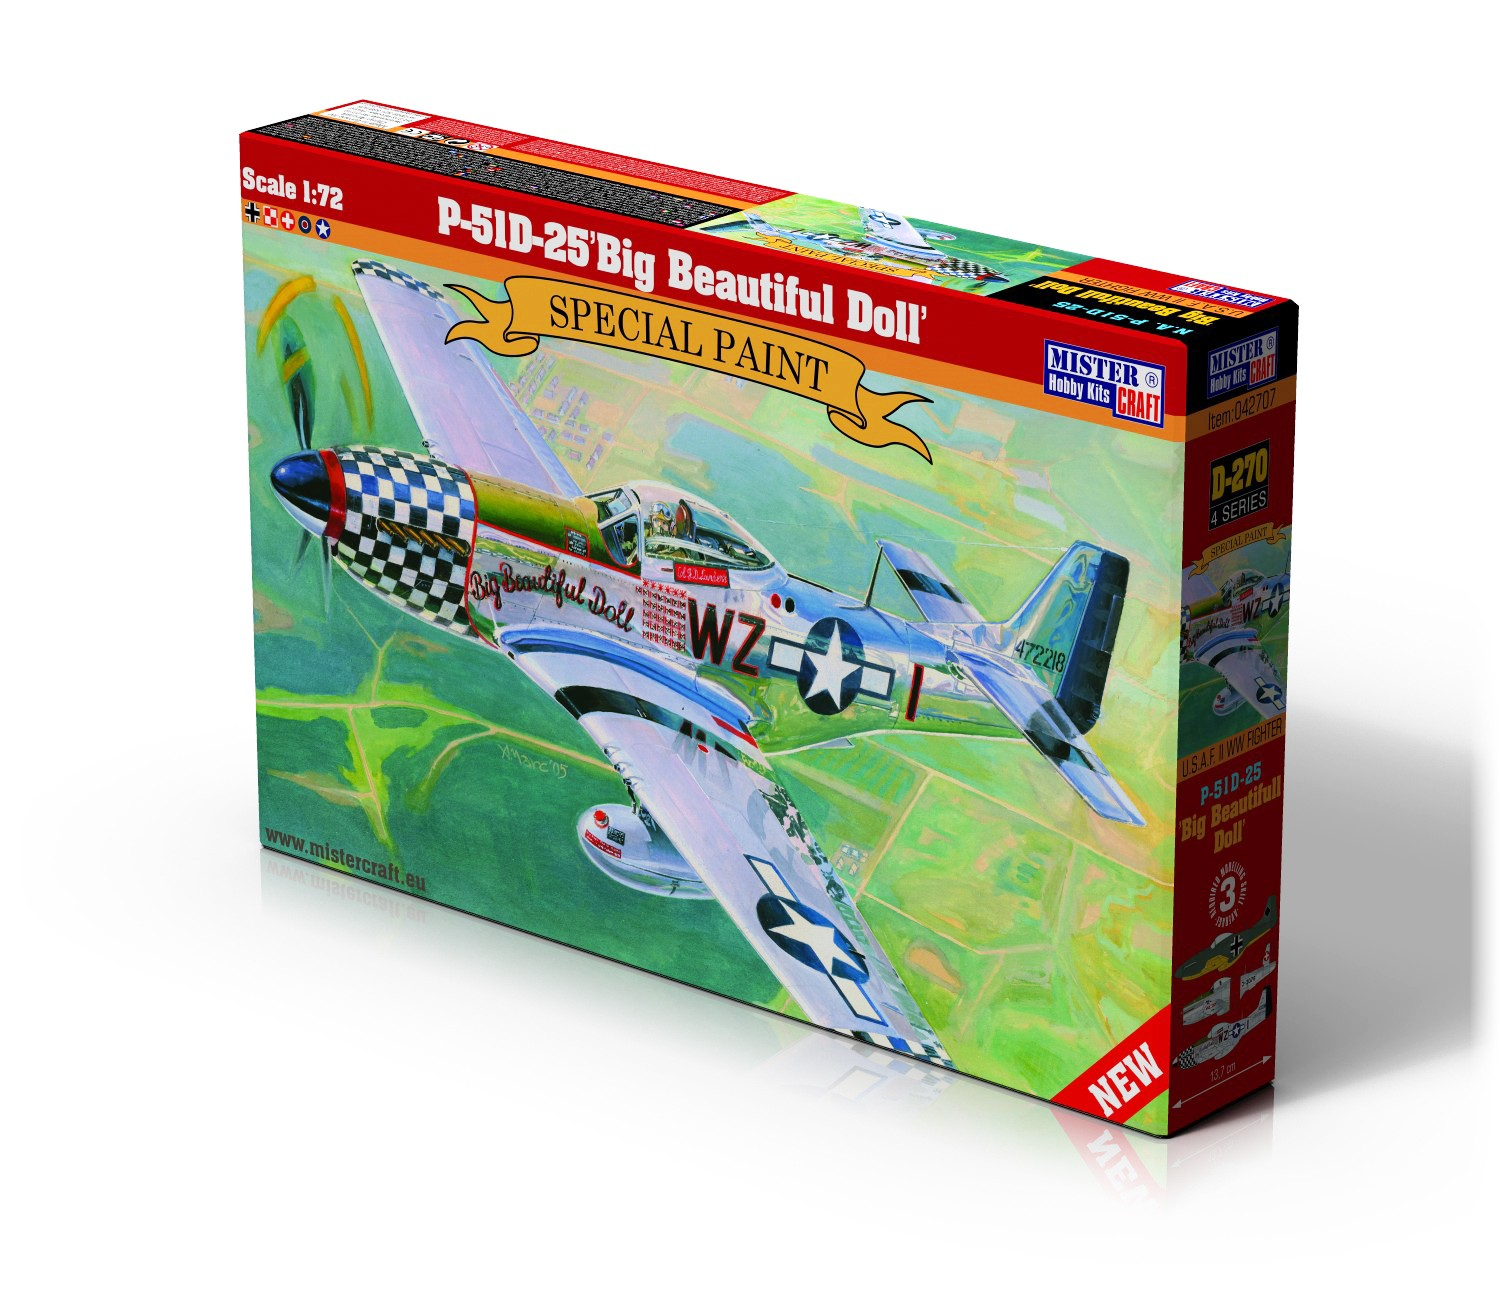 D-270 P-51D-25 Big Beautiful Doll   1:72